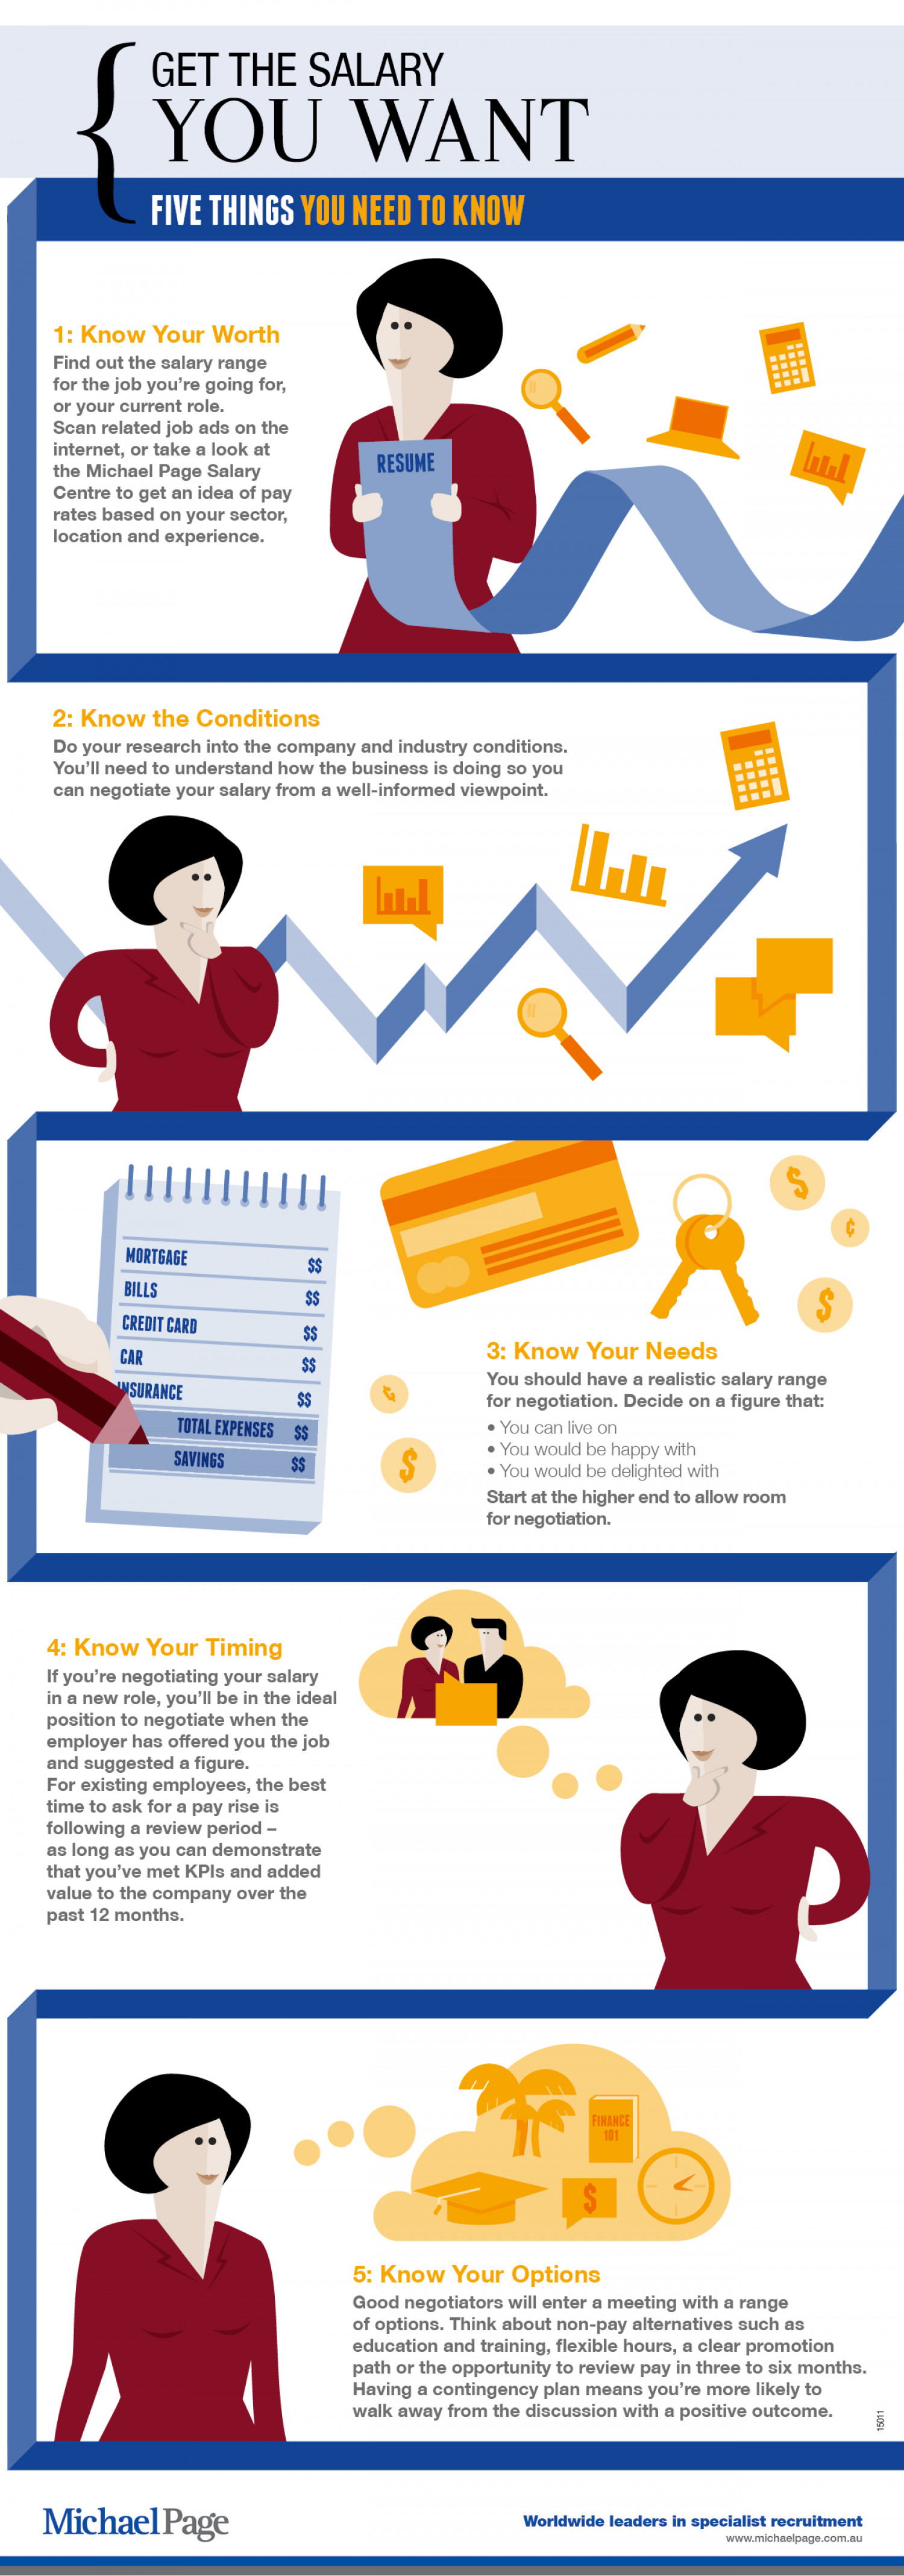 How To Get The Salary You Want Visual